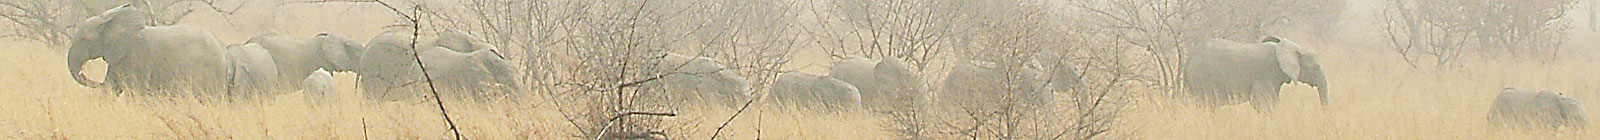 African Elephants in Arli National Park, Burkina Faso.